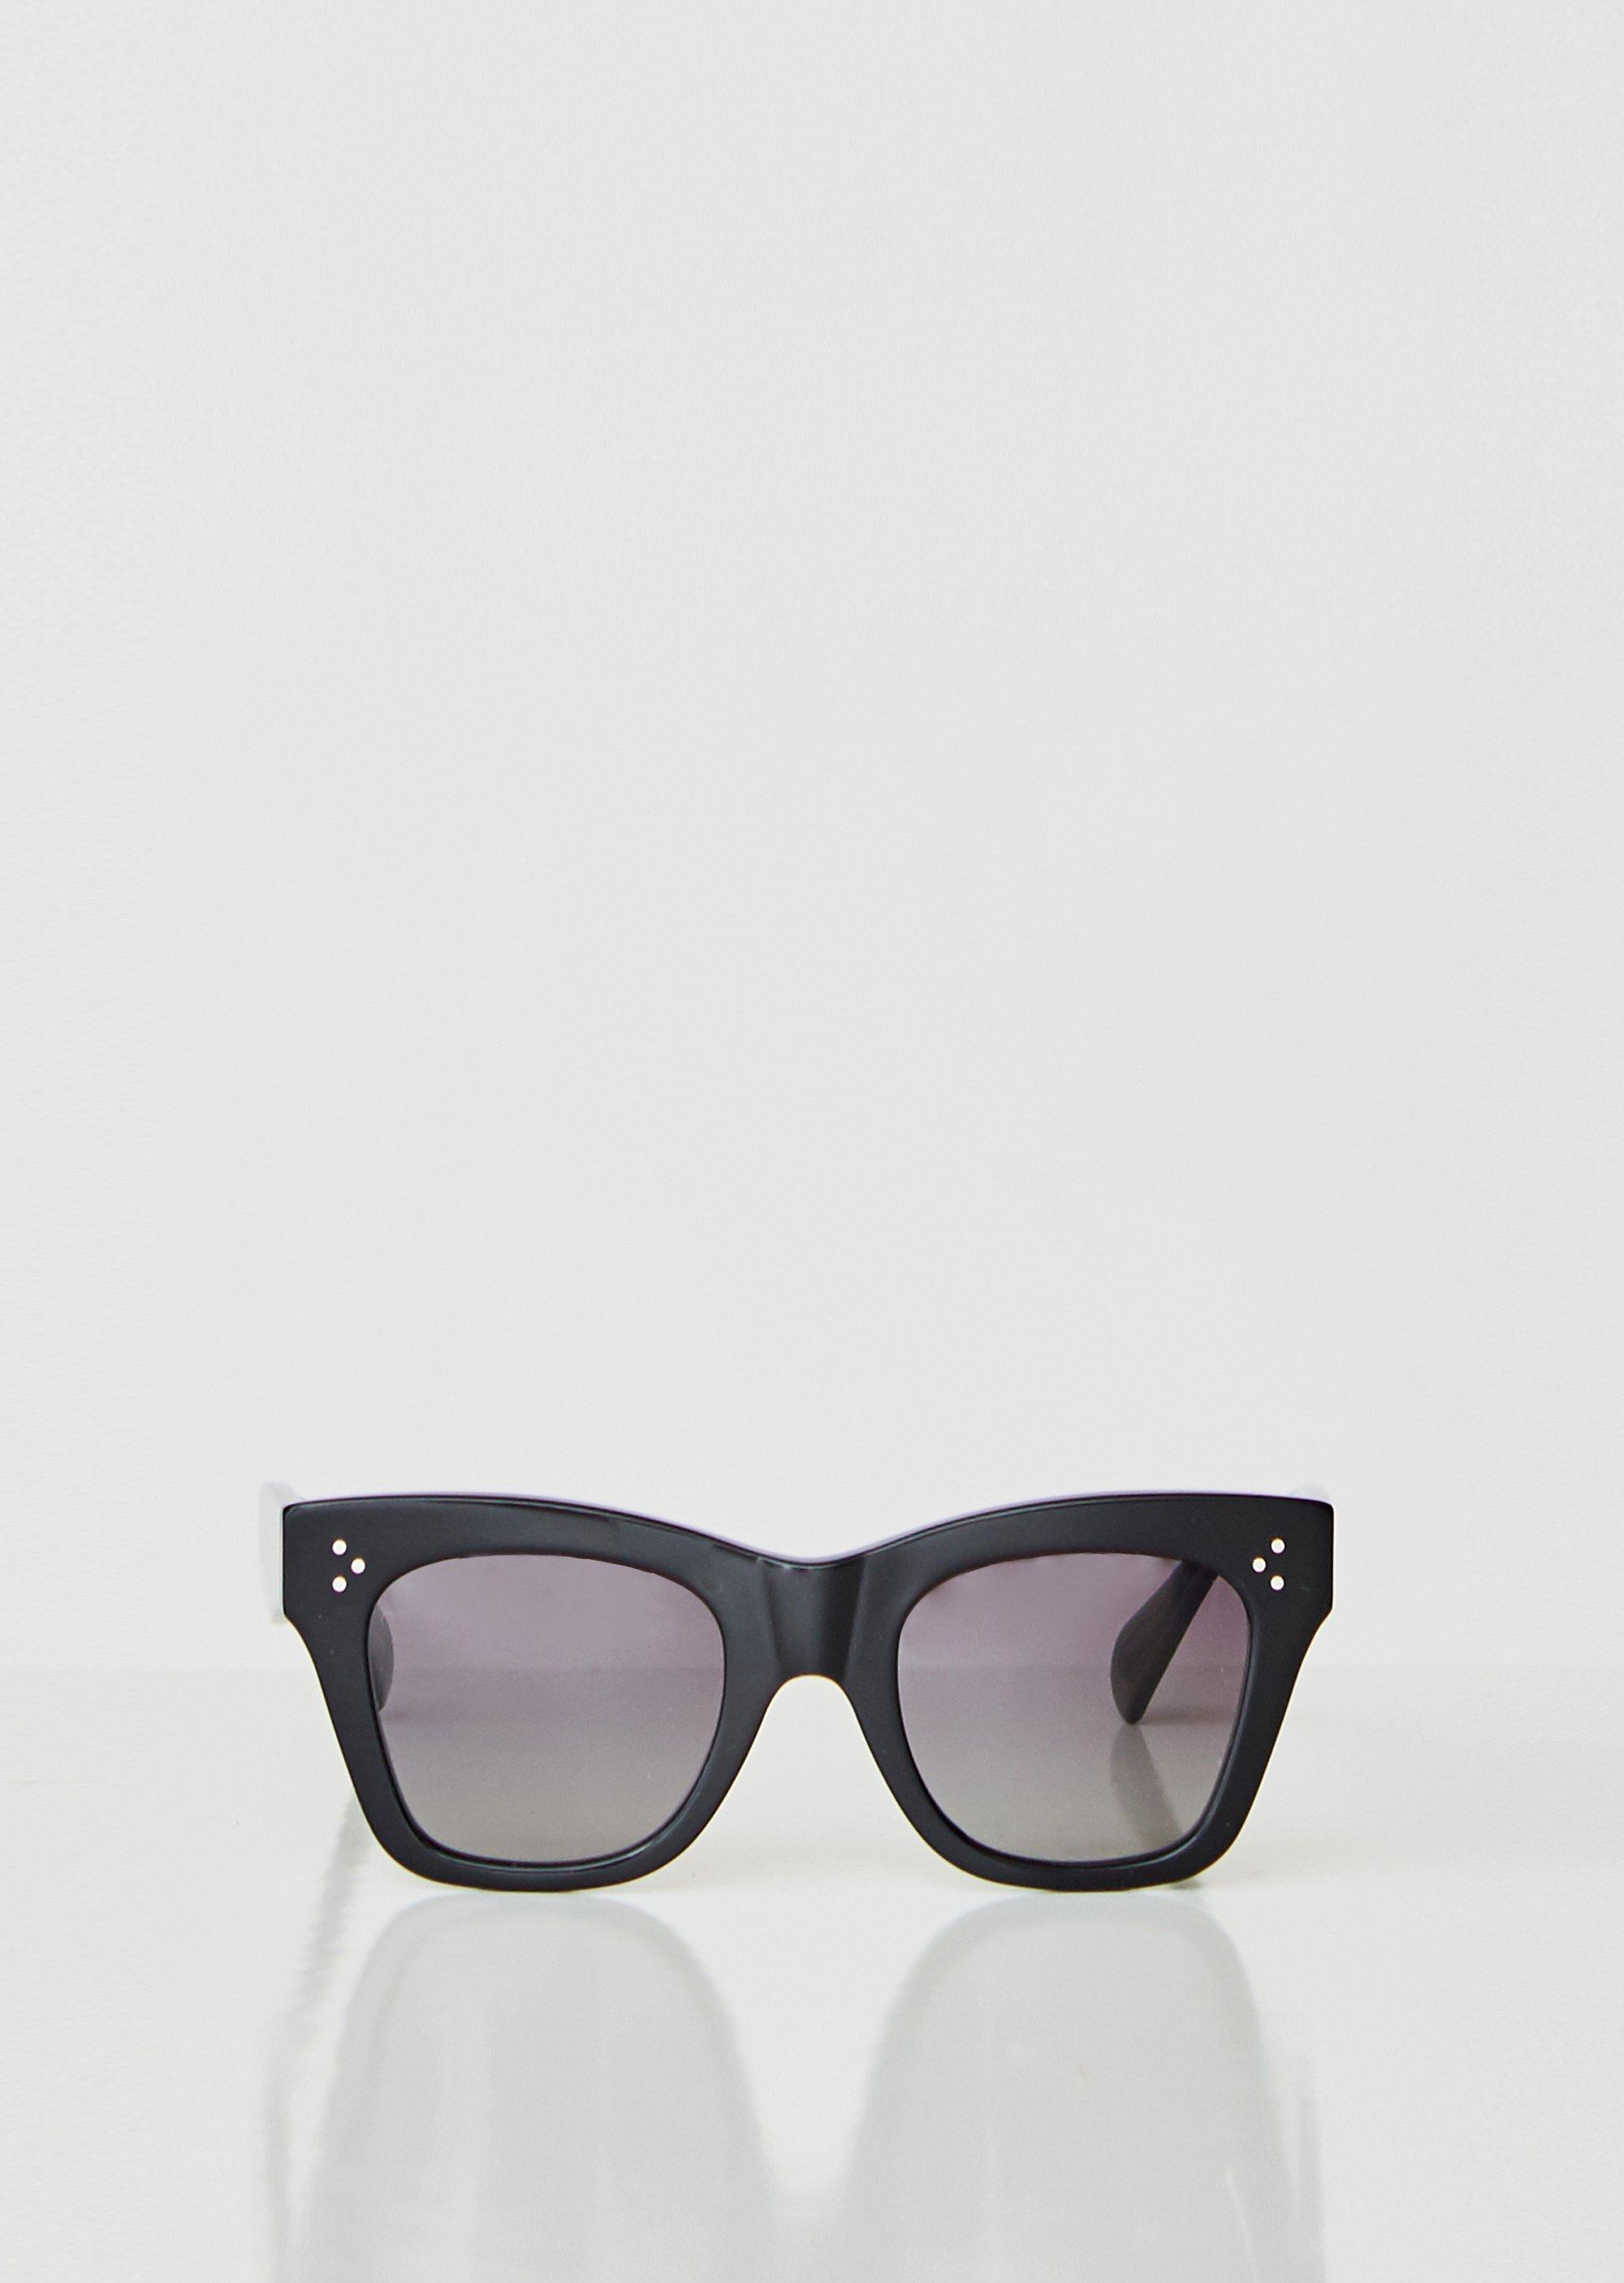 5b087fb19312 Lyst - Céline Oversized Square Acetate Sunglasses in Black